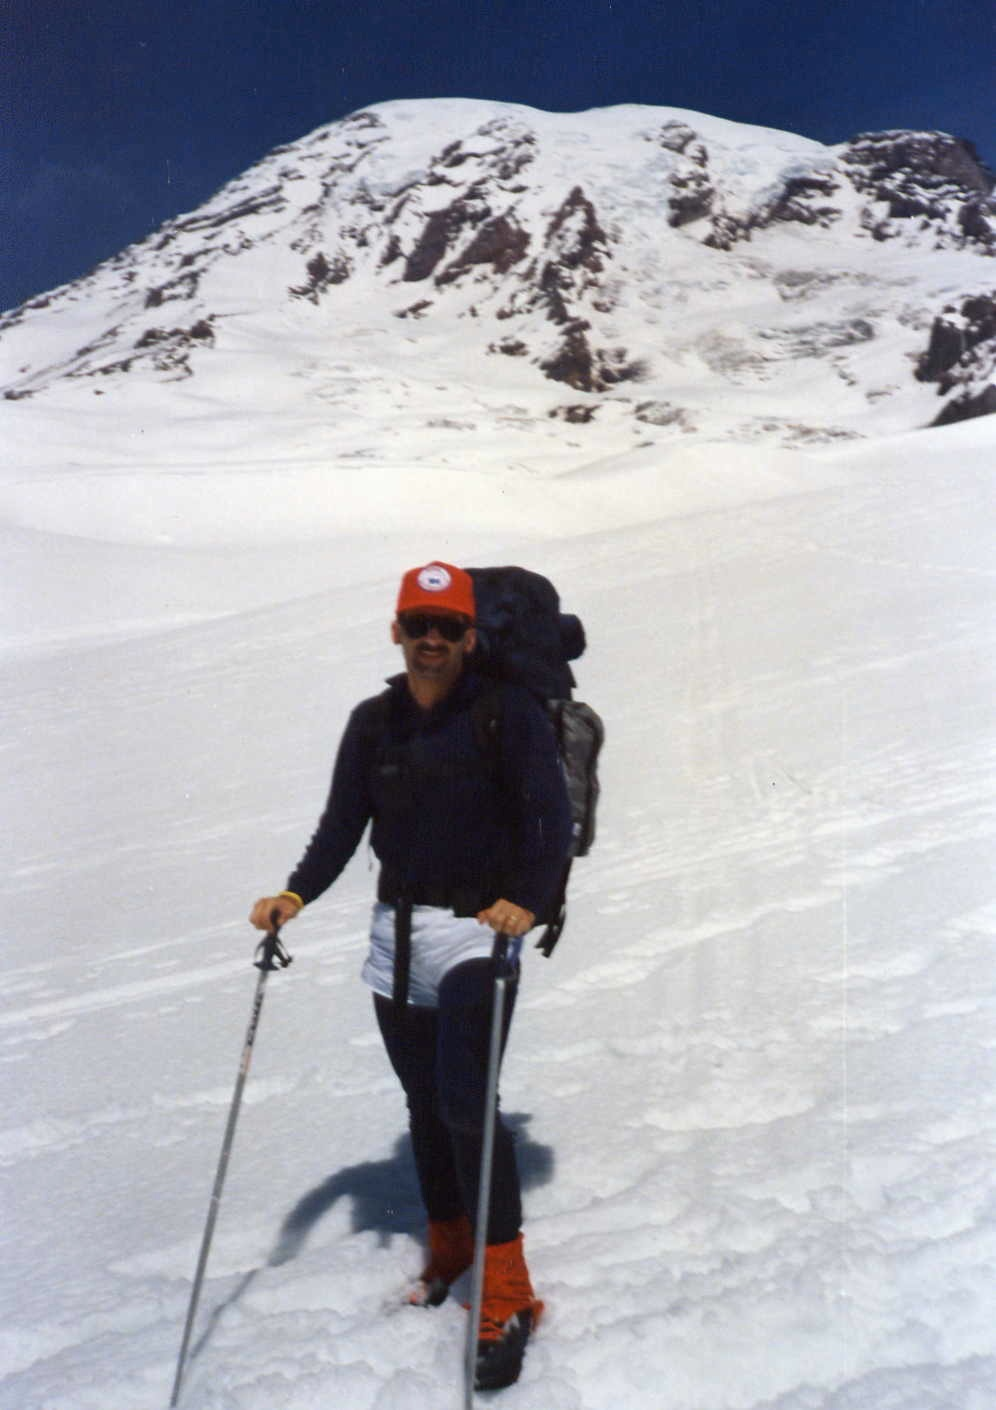 On Muir Snowfield. Mount Rainier.